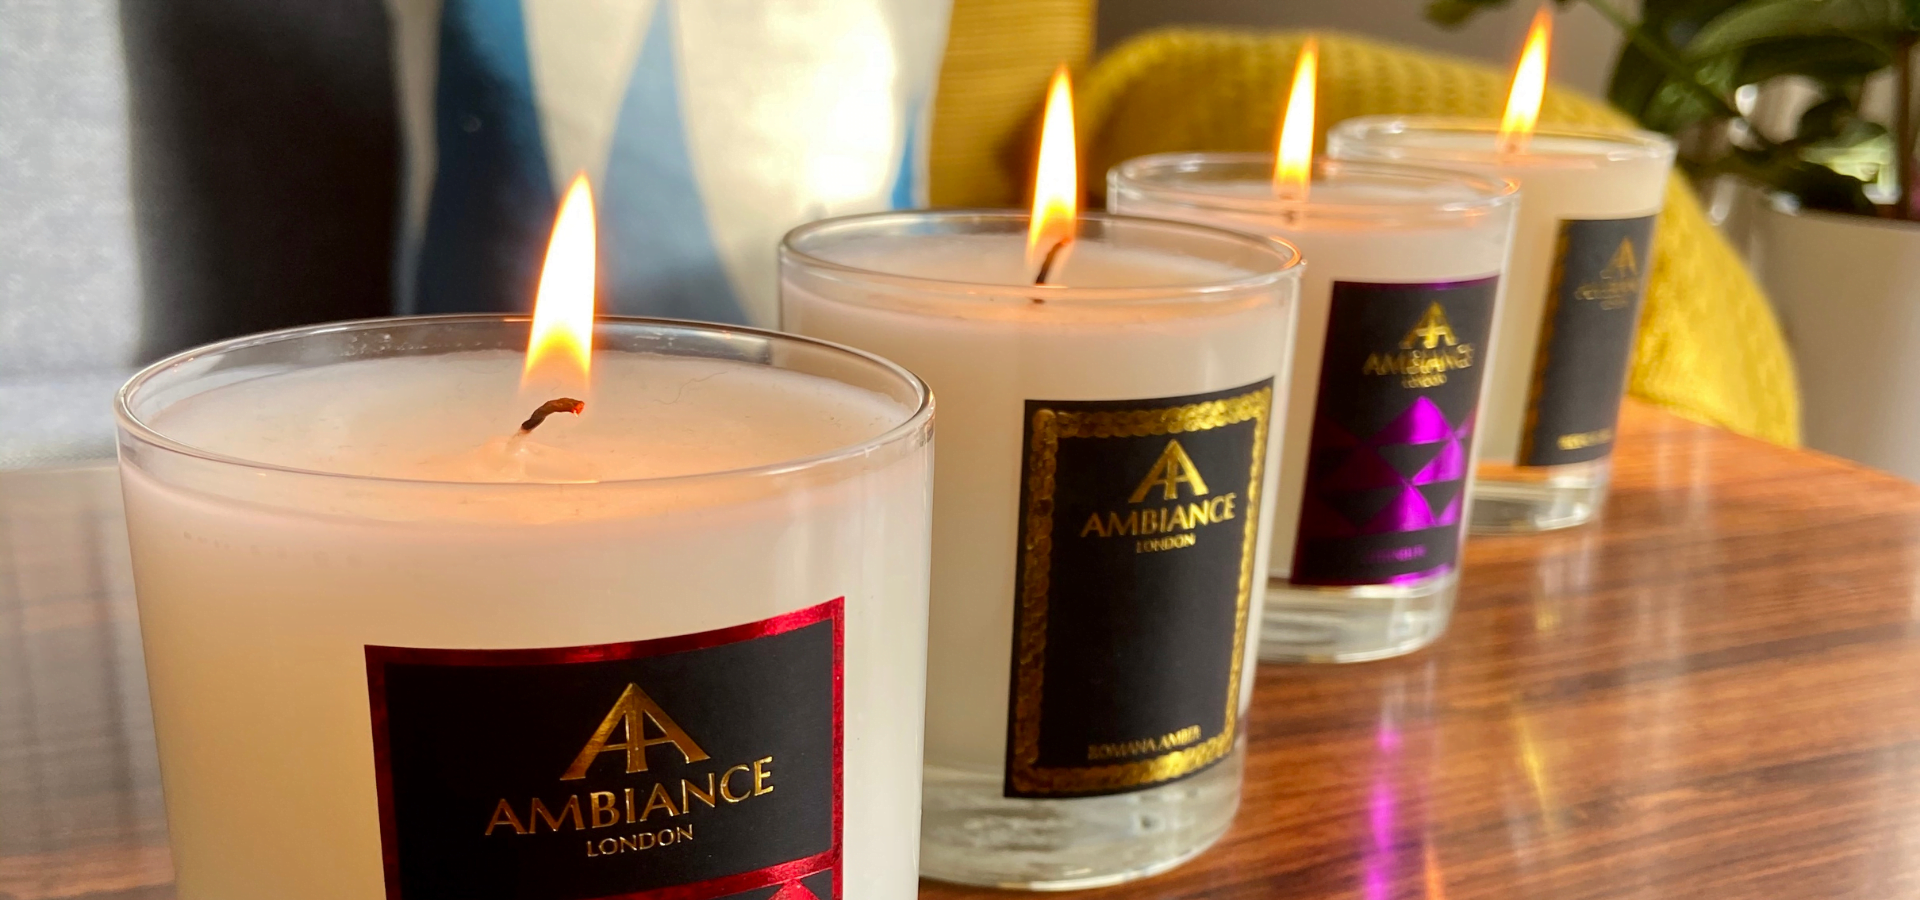 the best candles the scent your space - luxury scented candles - hand poured ancienne ambiance candles